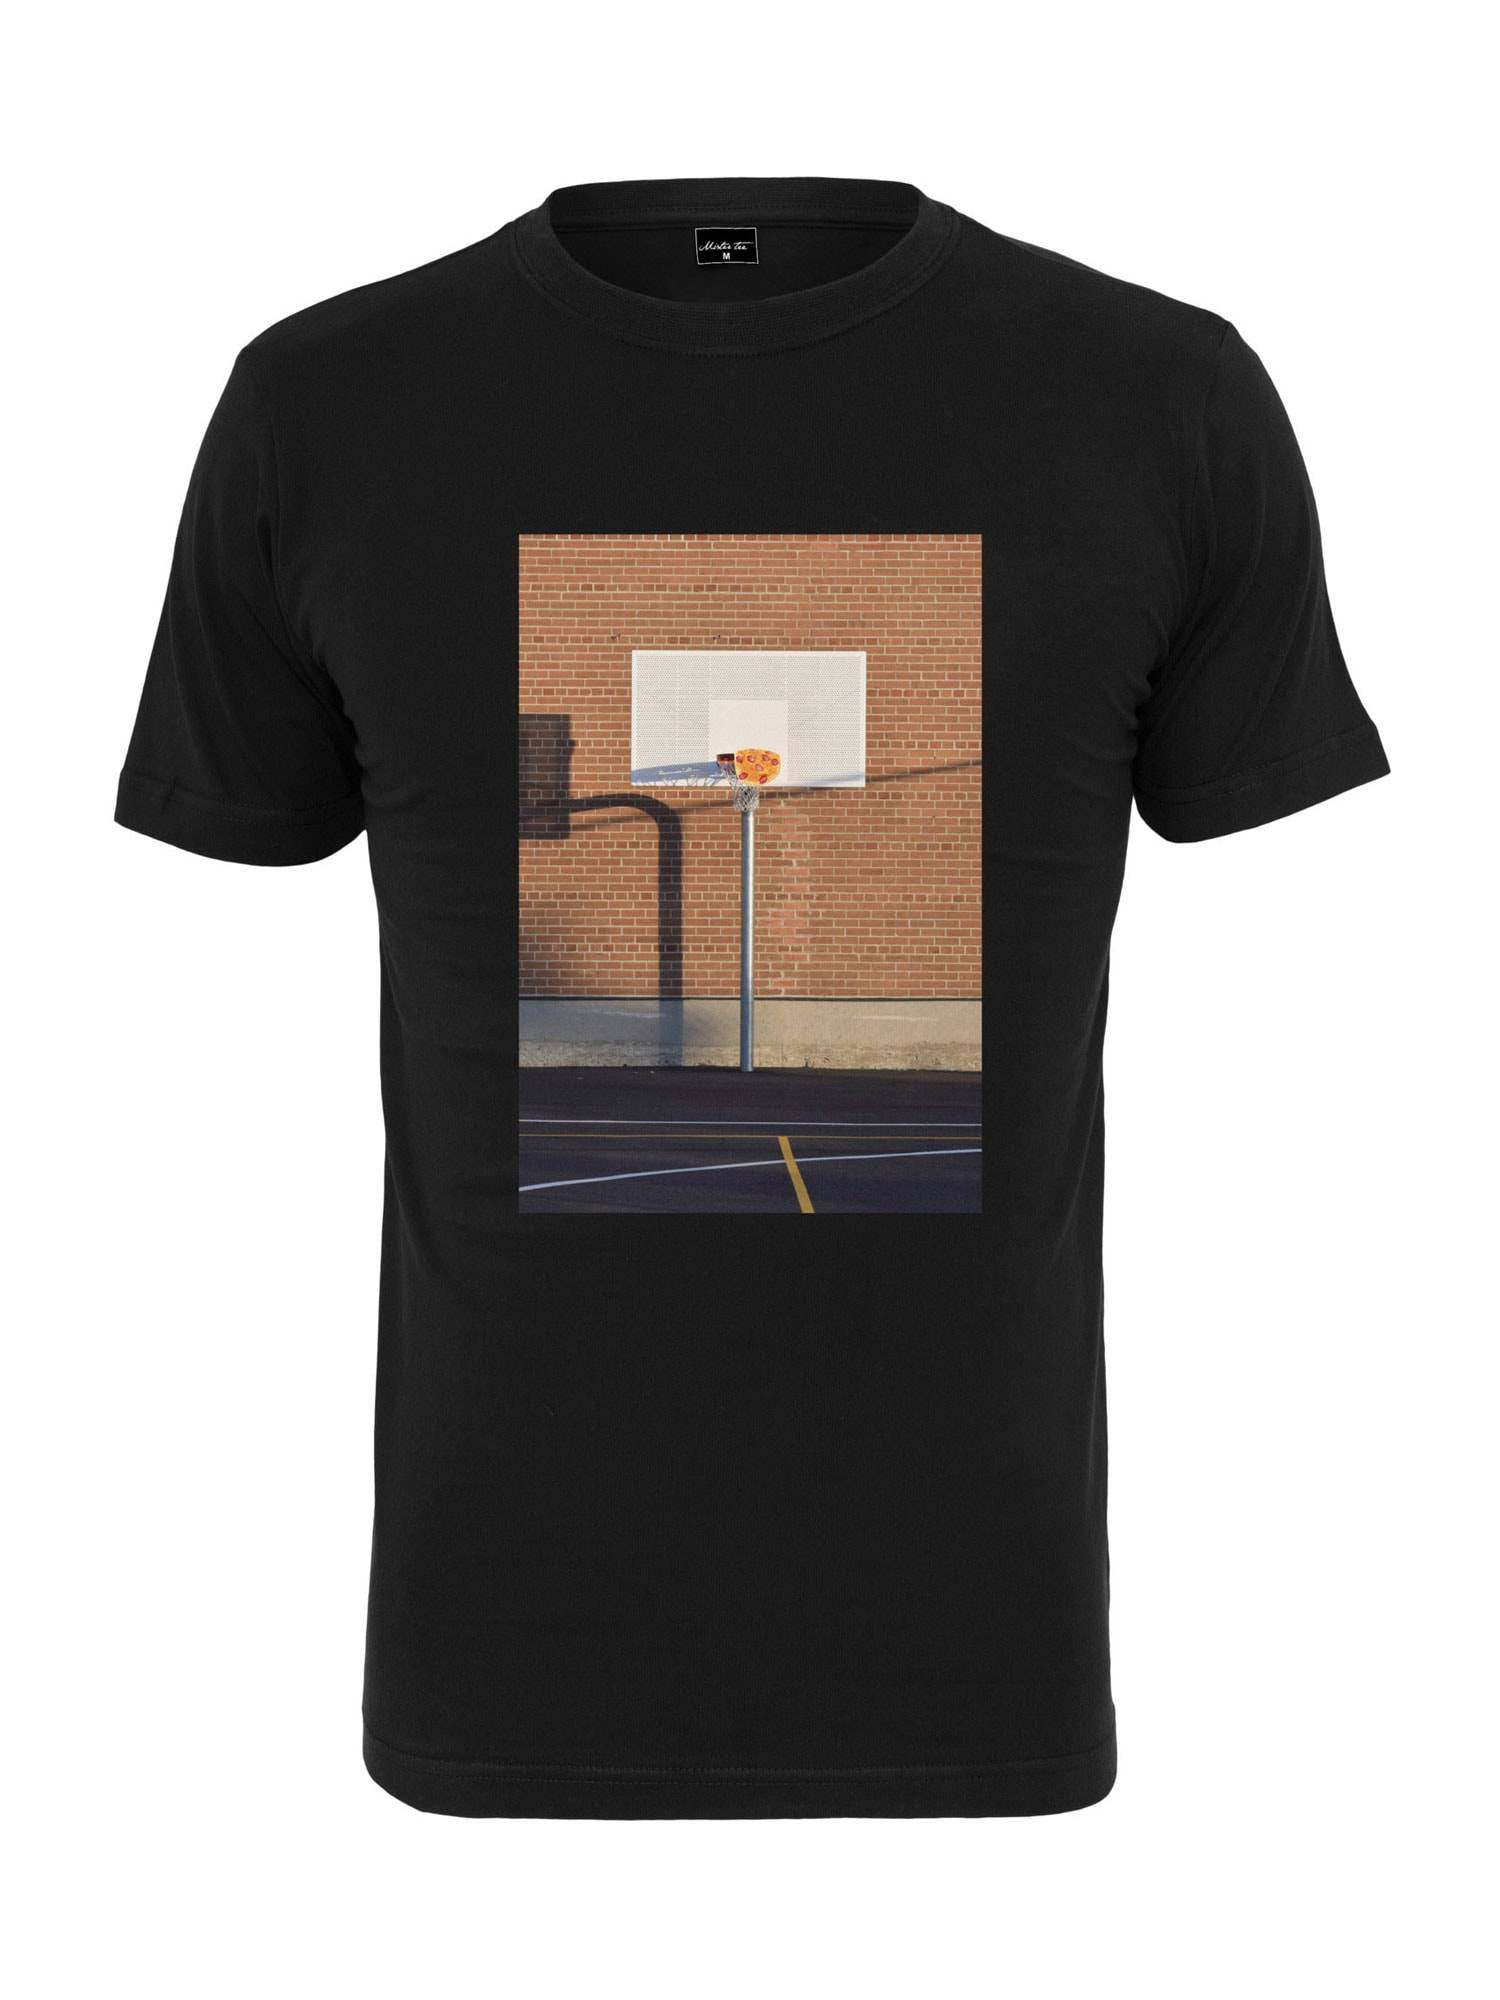 Tee T-Shirt 'Pizza Basketball Court'  - Noir - Taille: S - male